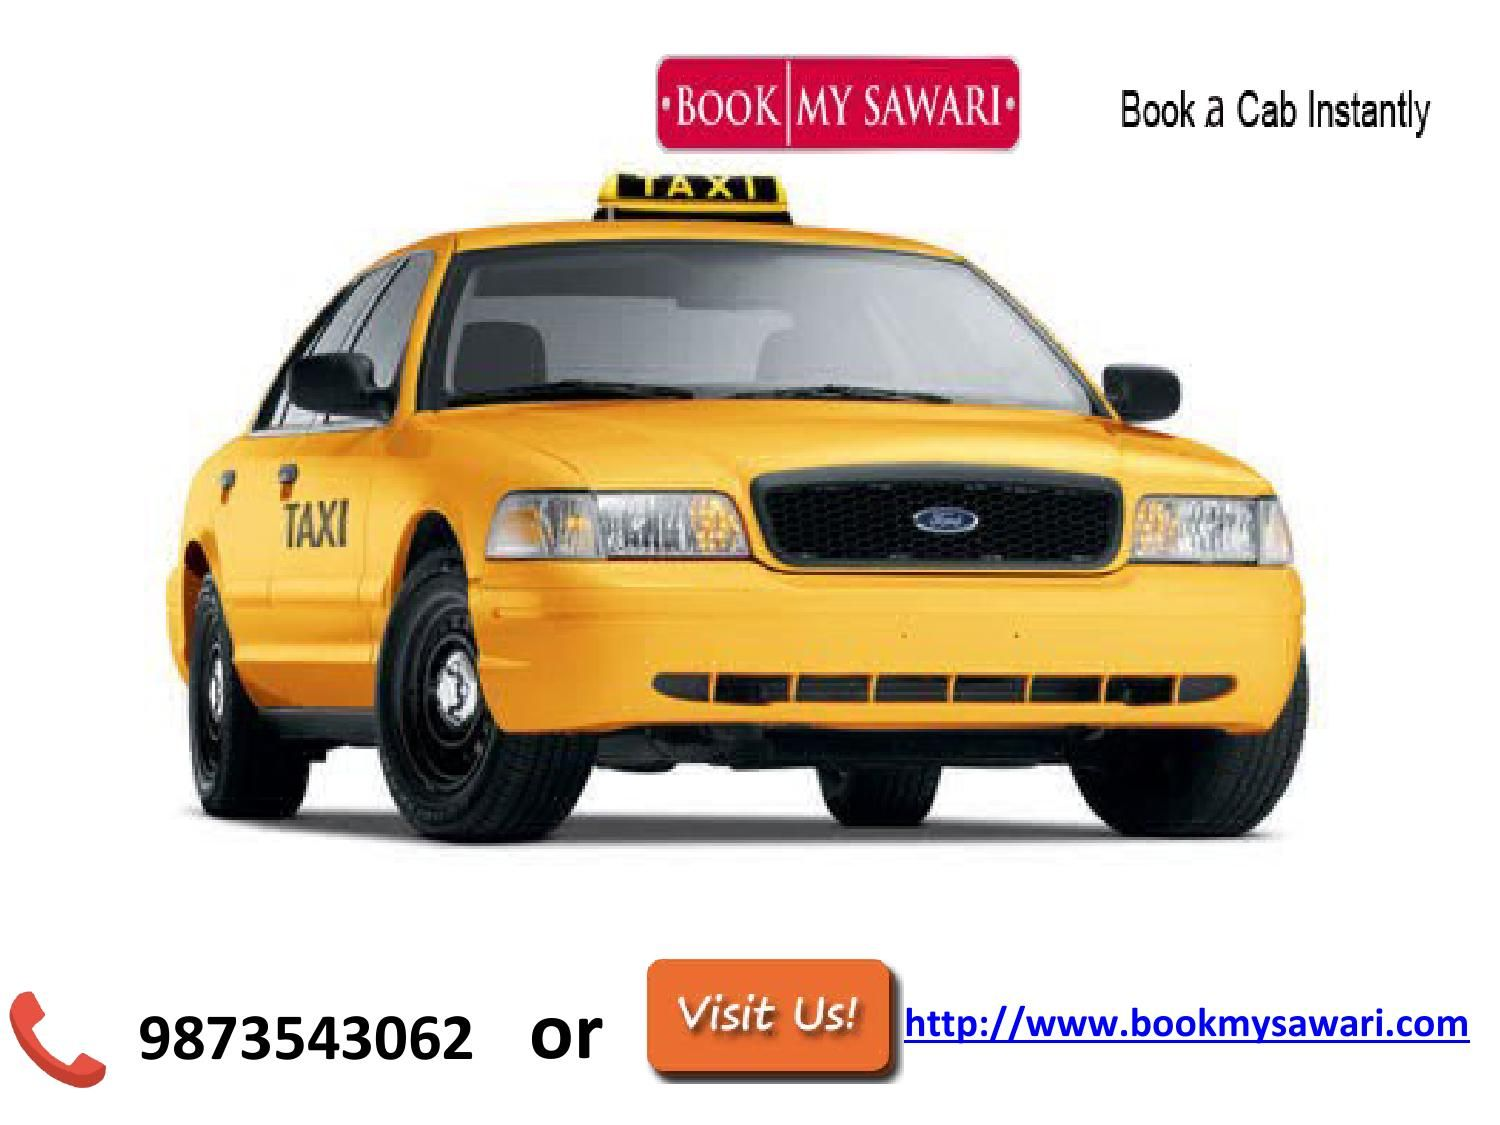 Outstation Cabs Mumbai Lowest Prices Cab Services in